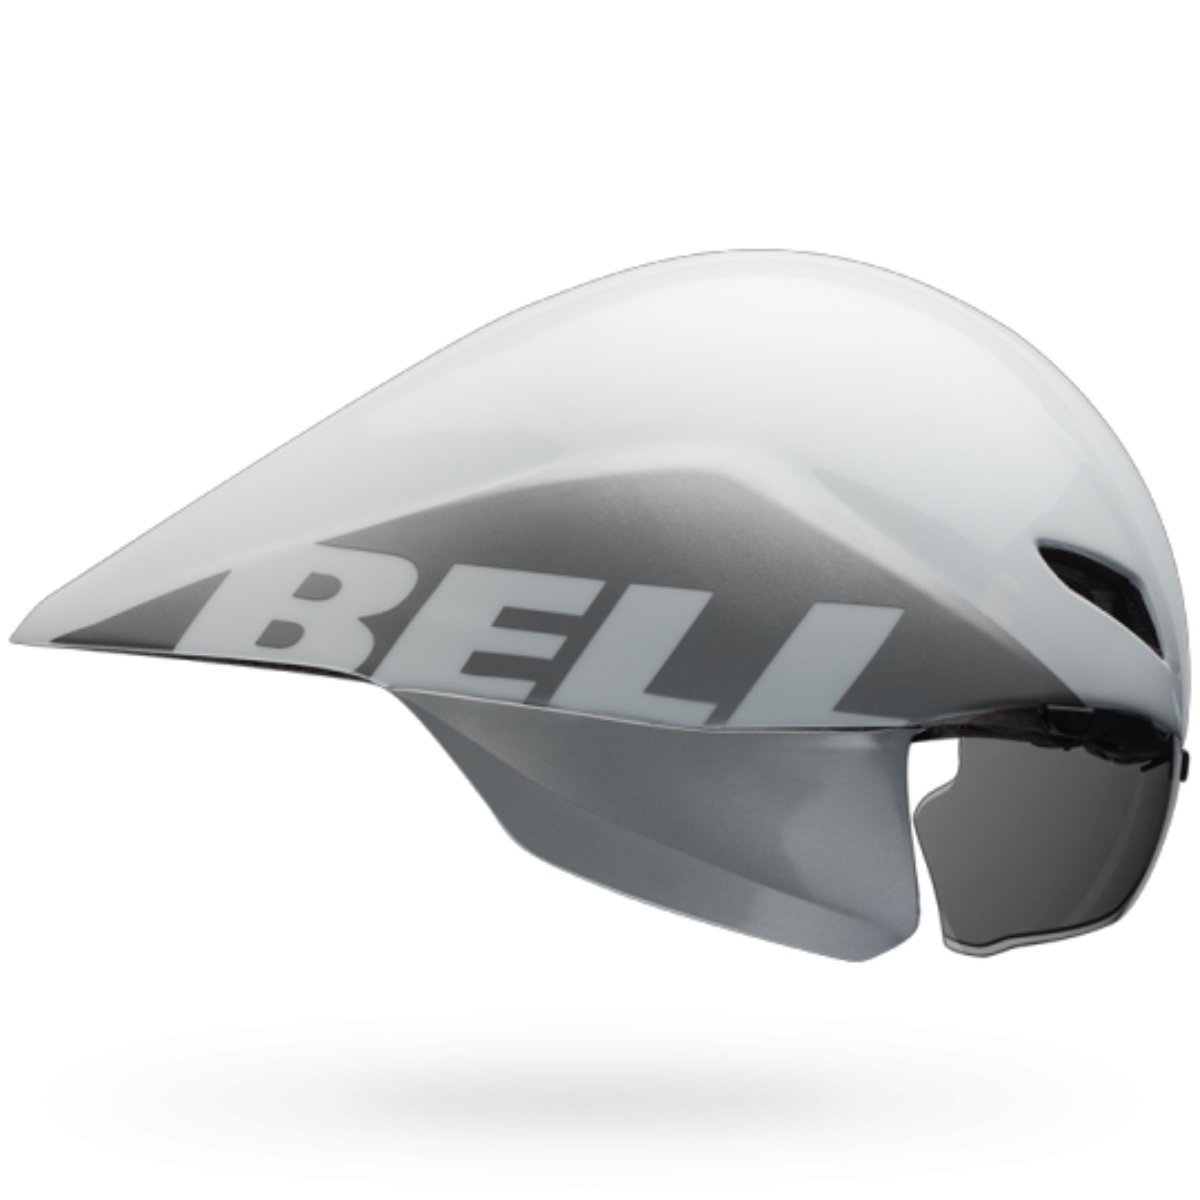 Best Bell Bike Helmets